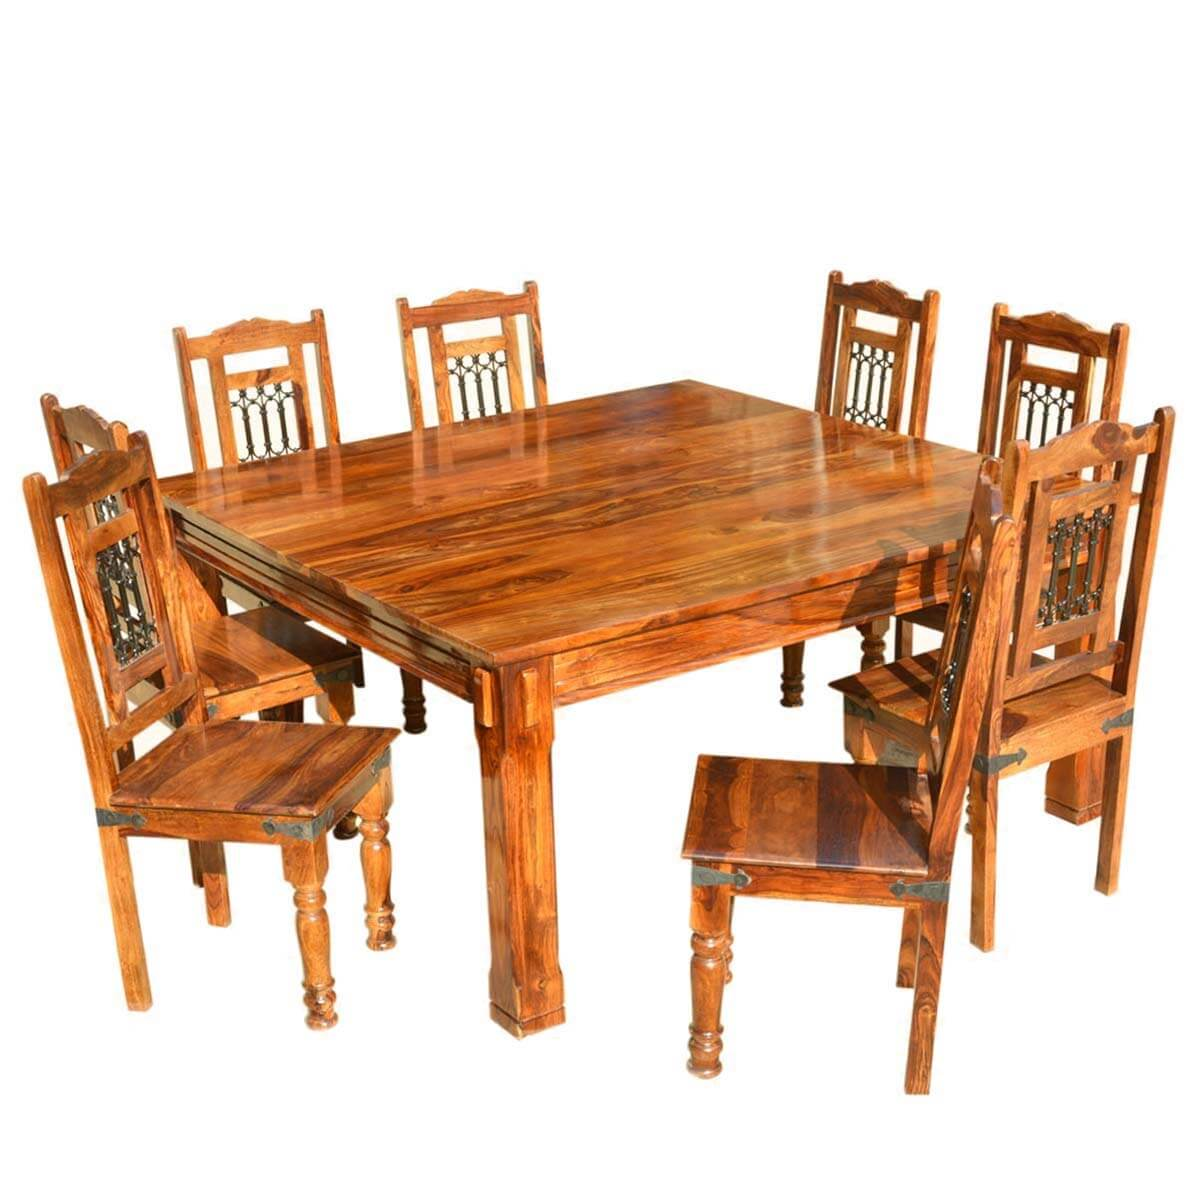 Rustic Solid Wood Large Square Dining Table Chair Set: Solid Wood Rustic Square Dining Table Chairs Set